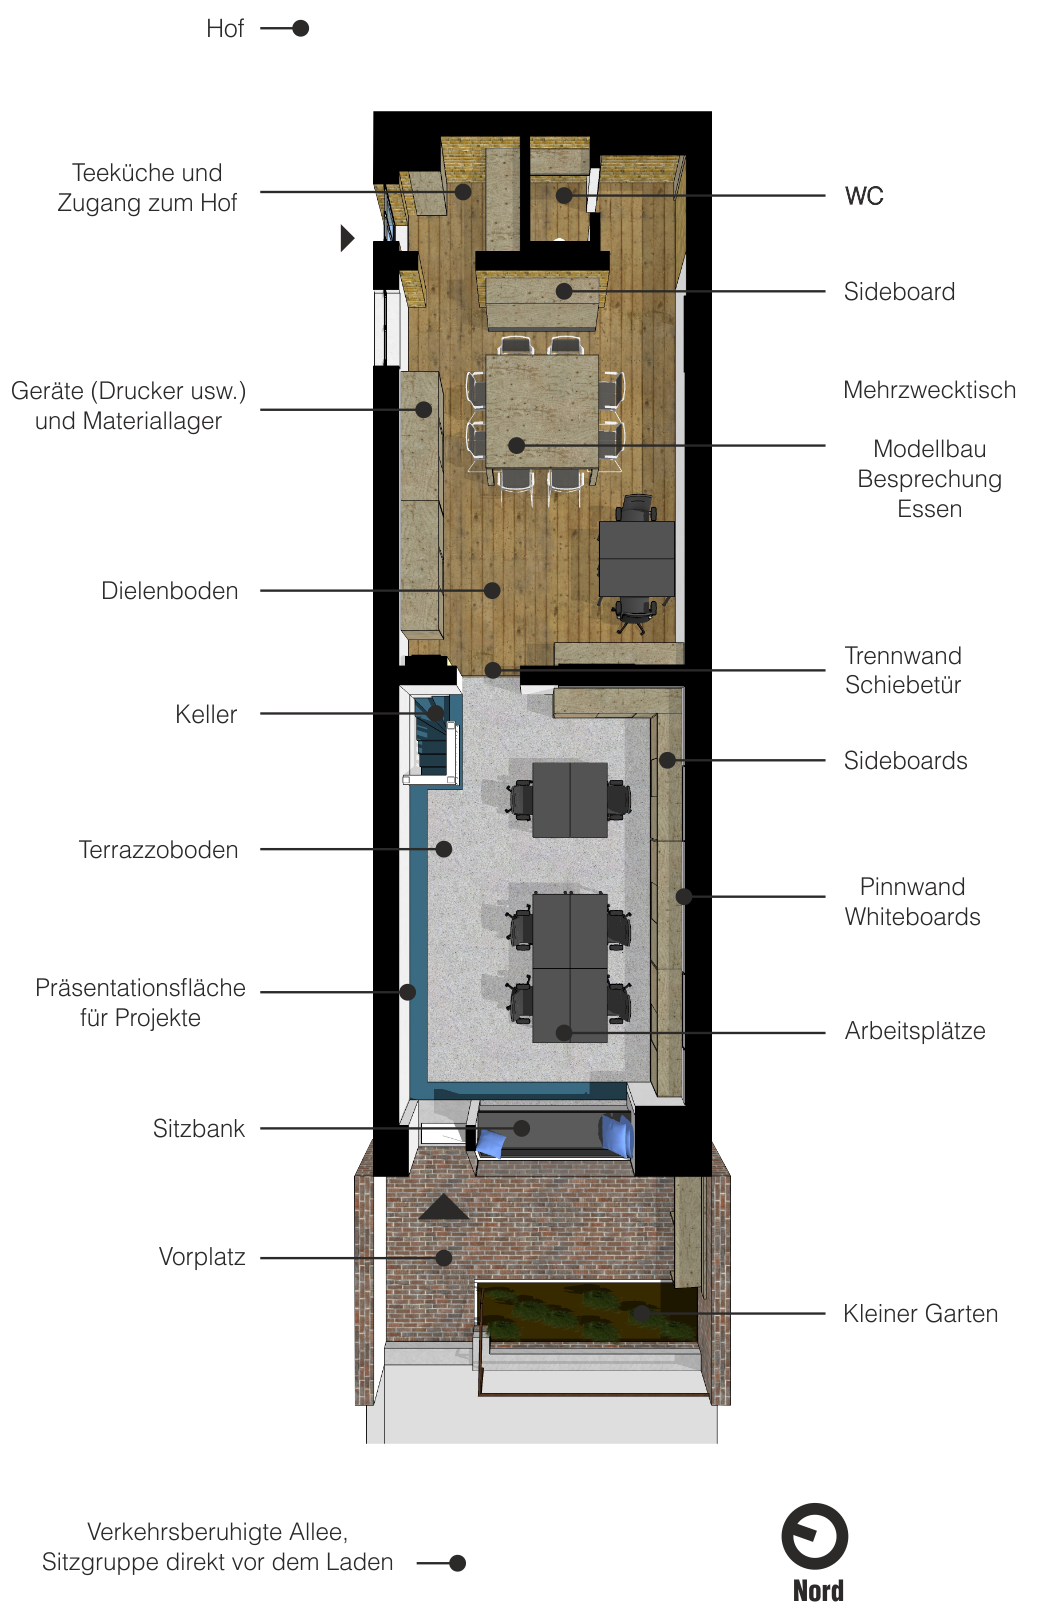 FloorplanWHITE